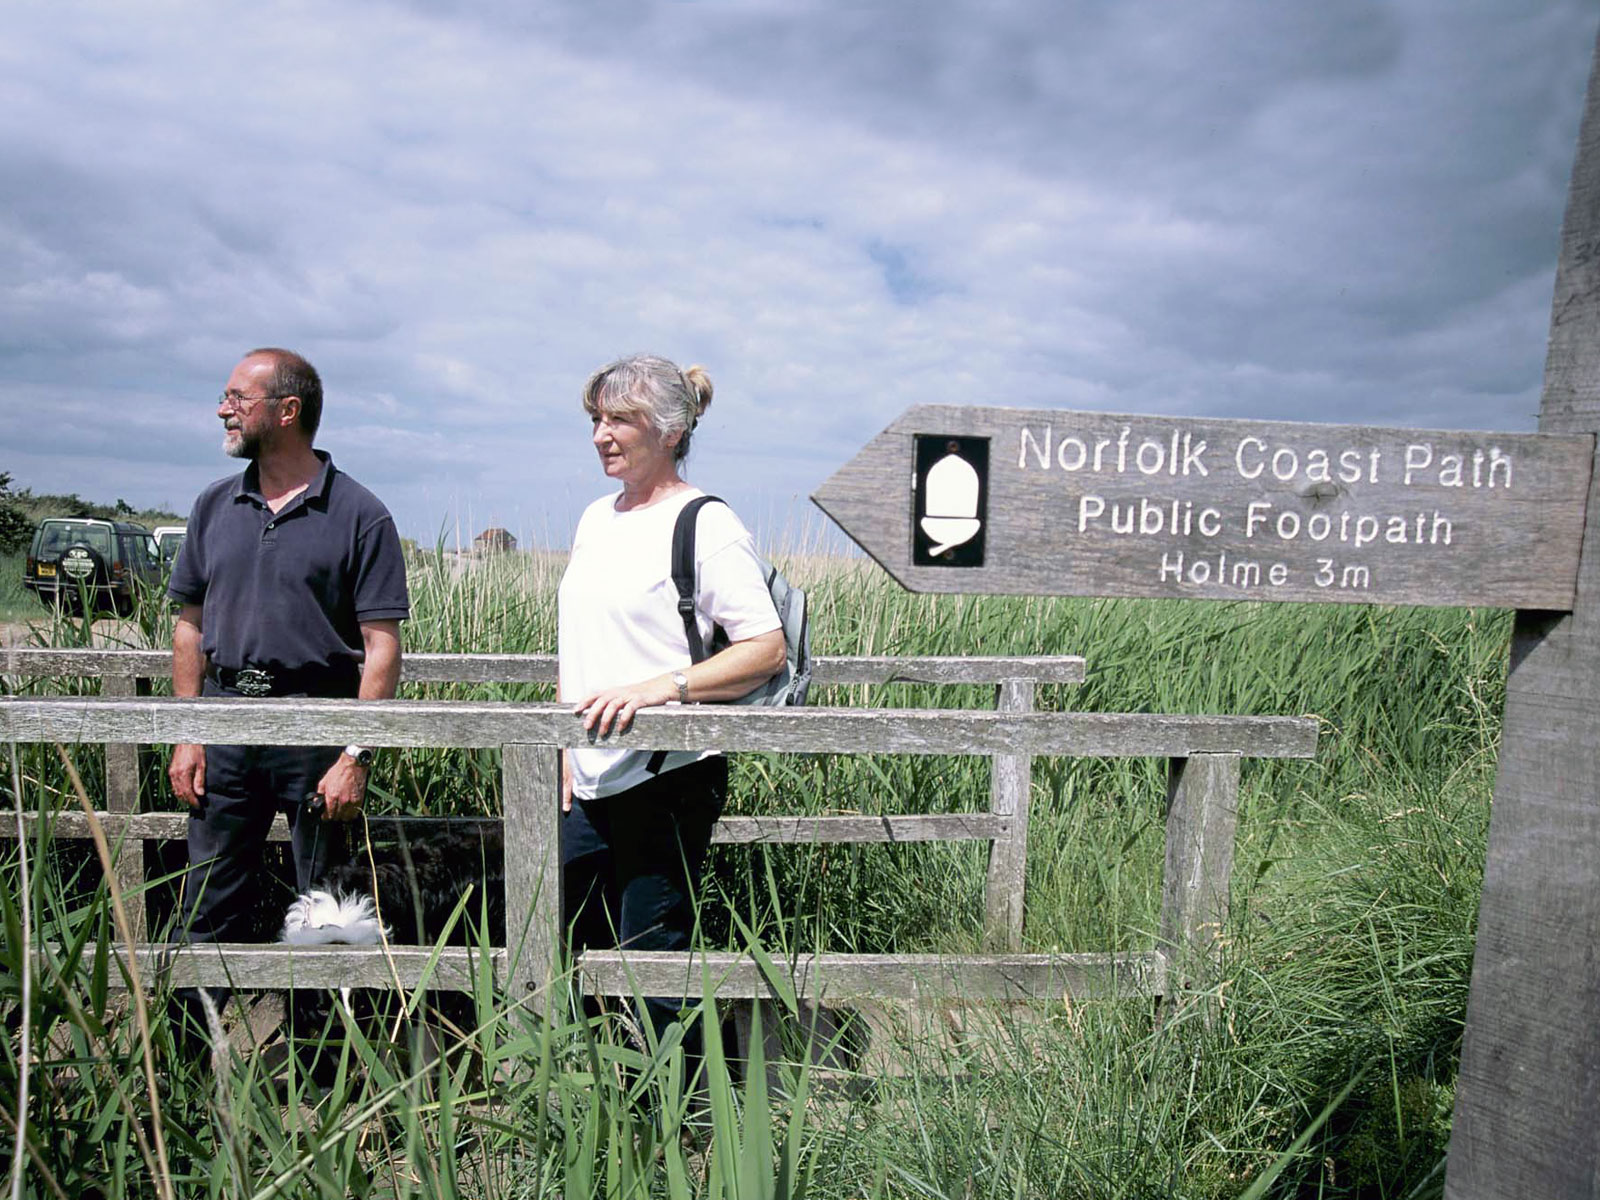 Norfolk Coast Path walkers at Thornham (picture by Andy Tryner, courtesy of Natural England / National Trails)